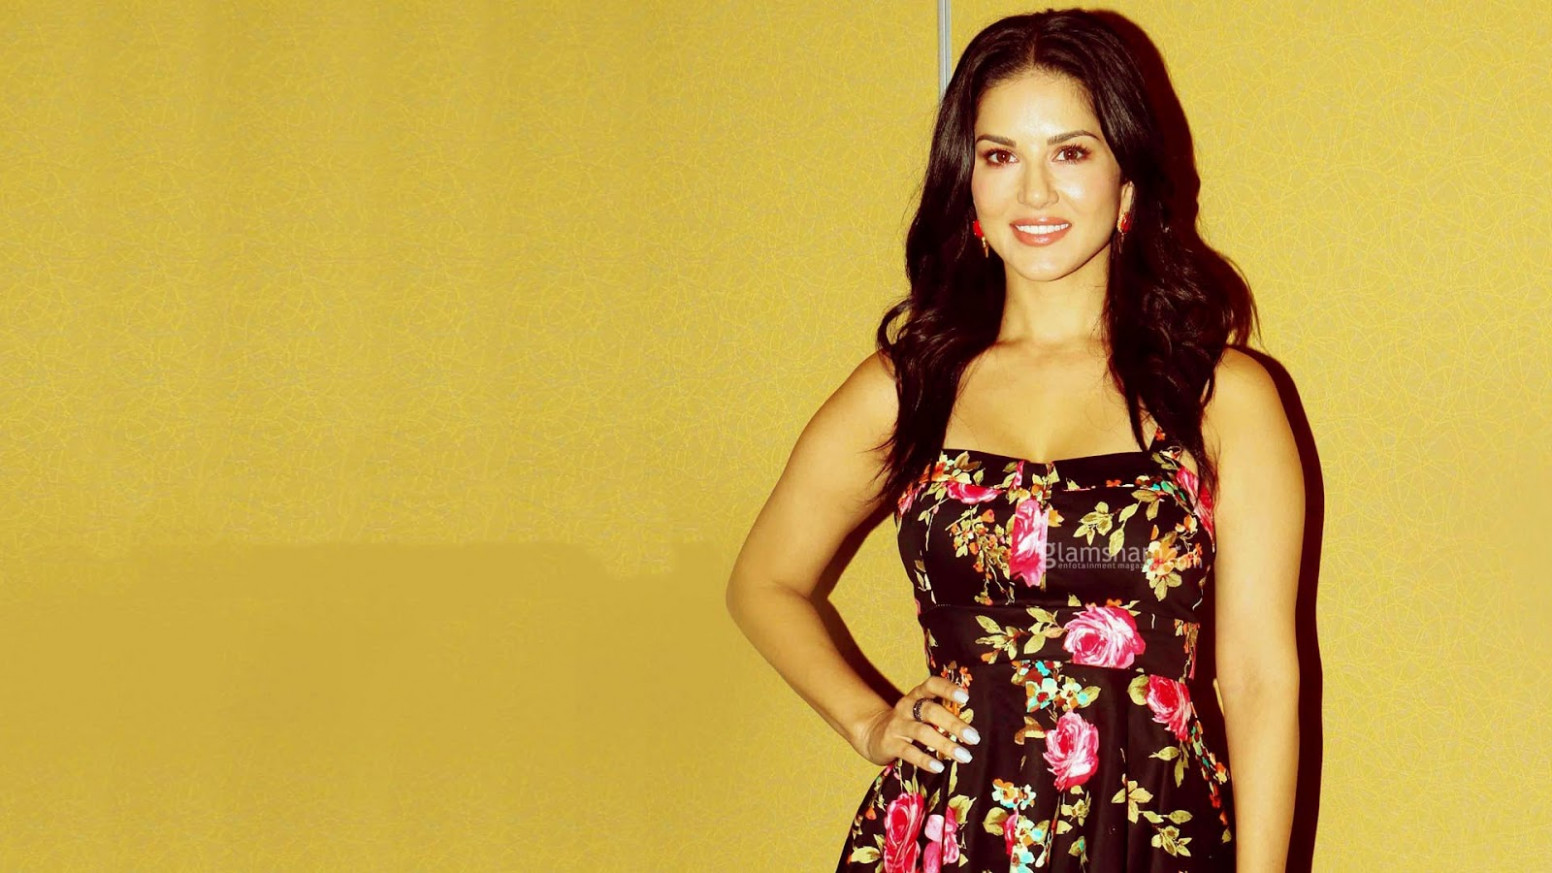 Sunny Leone Wallpapers HD Download Free 1080p ...